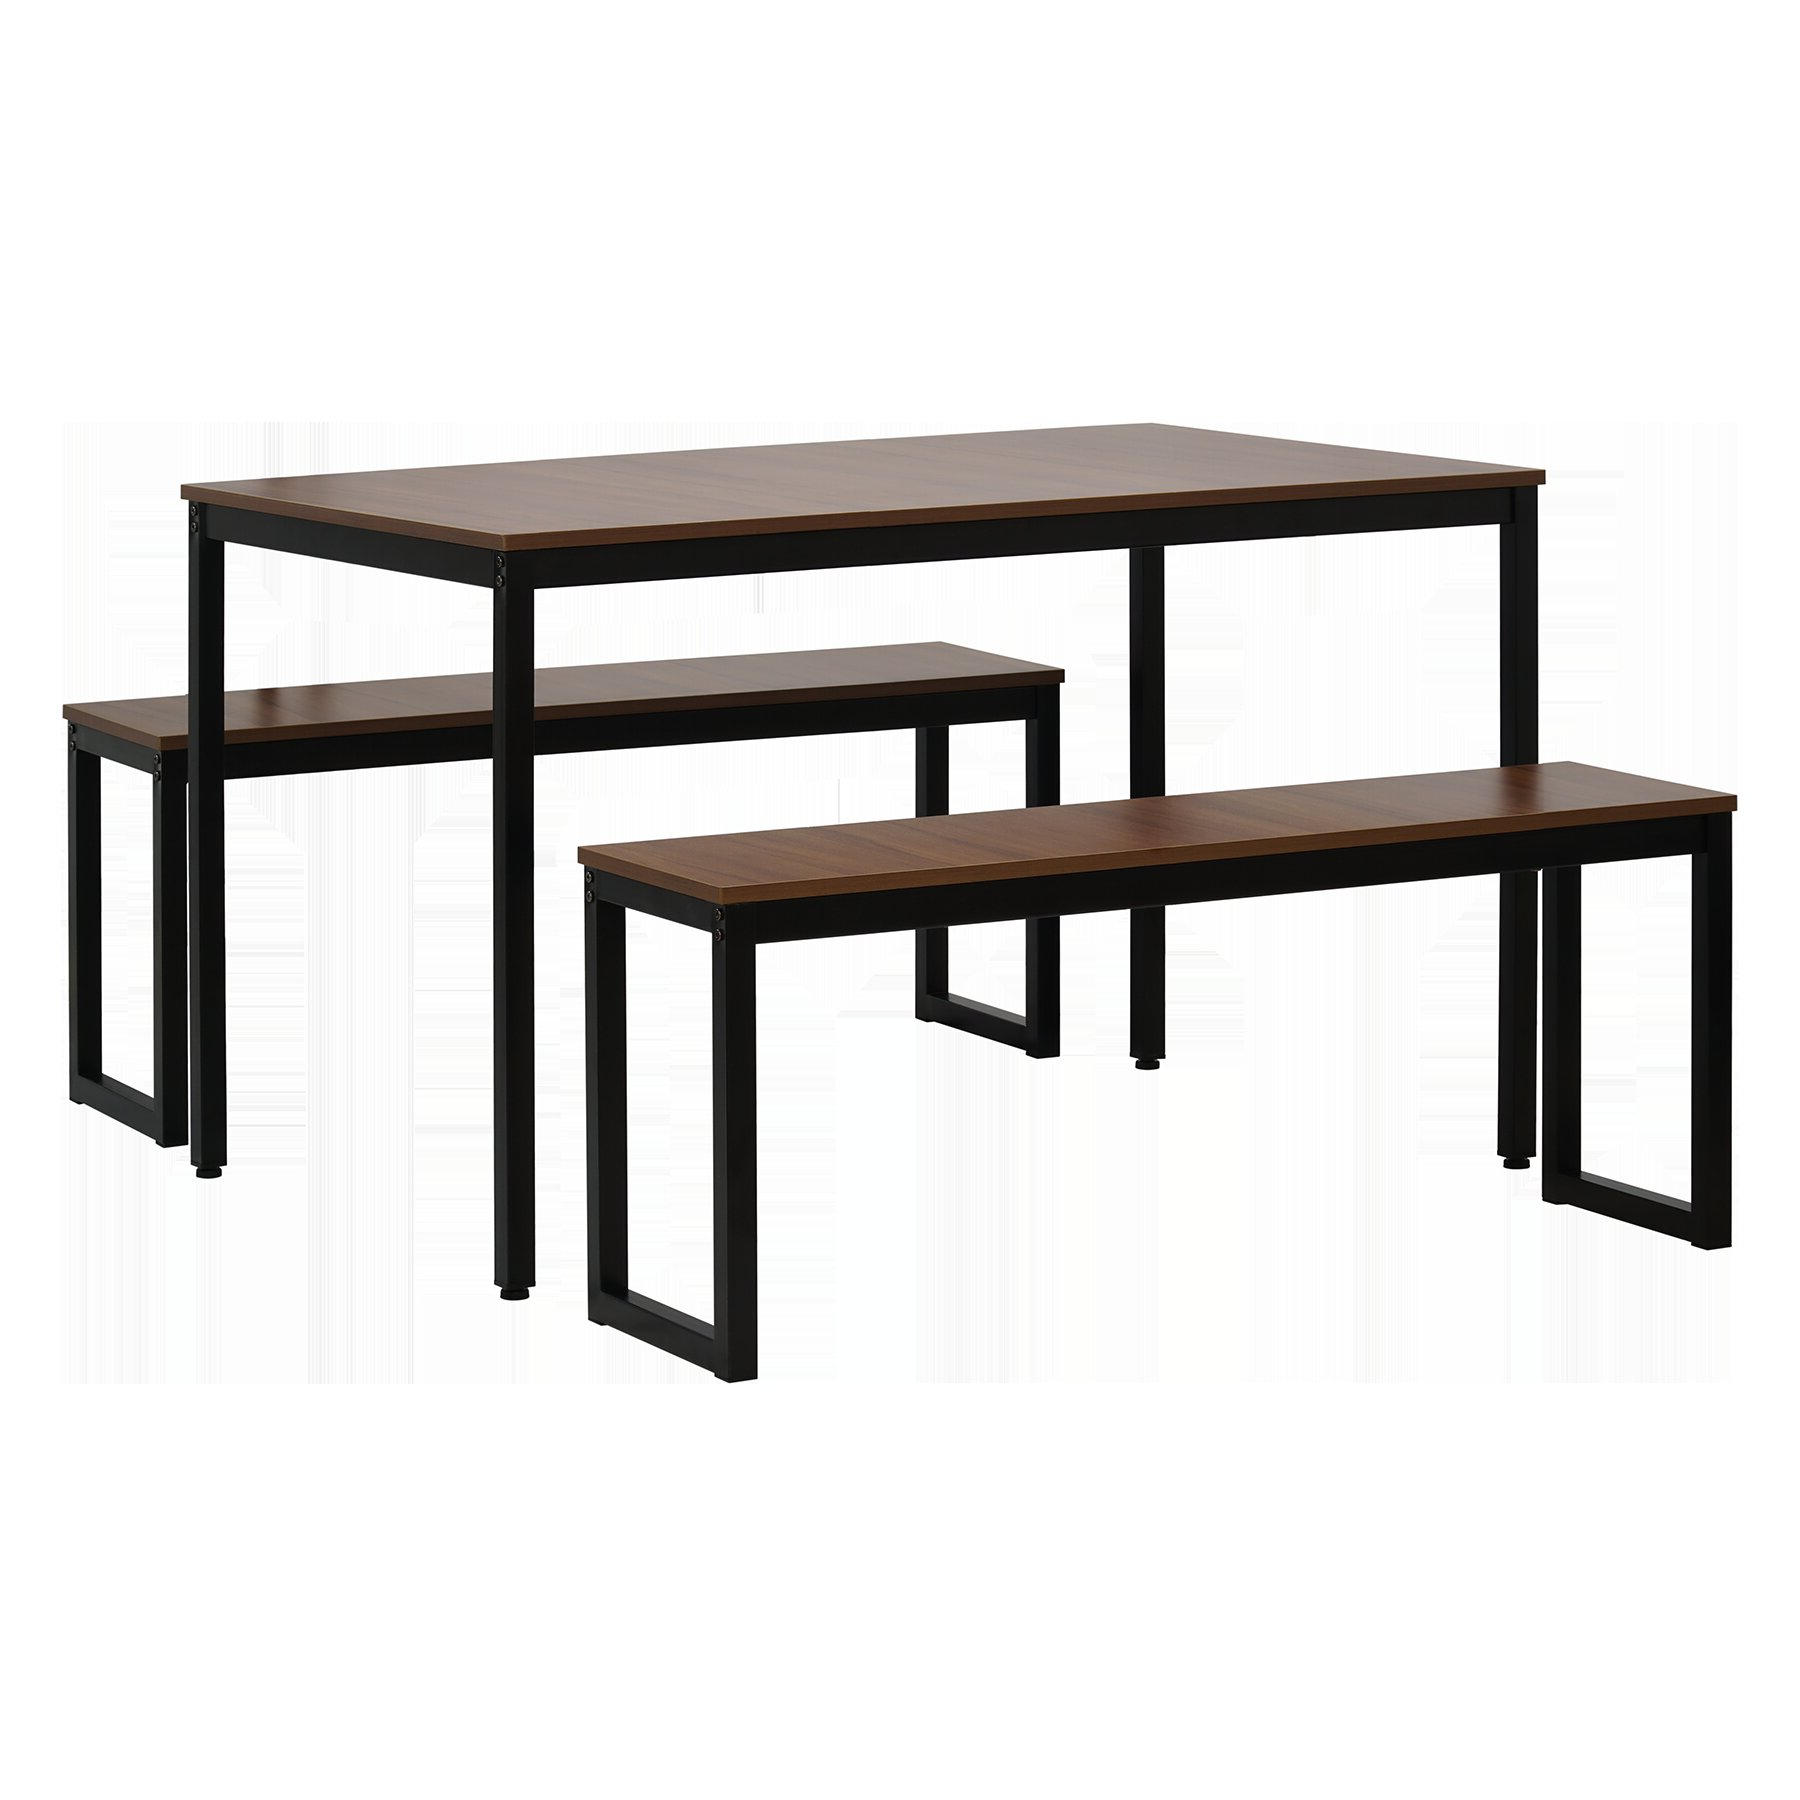 West Hill Family Table 3 Piece Dining Set With Fashionable Saintcroix 3 Piece Dining Sets (View 20 of 20)